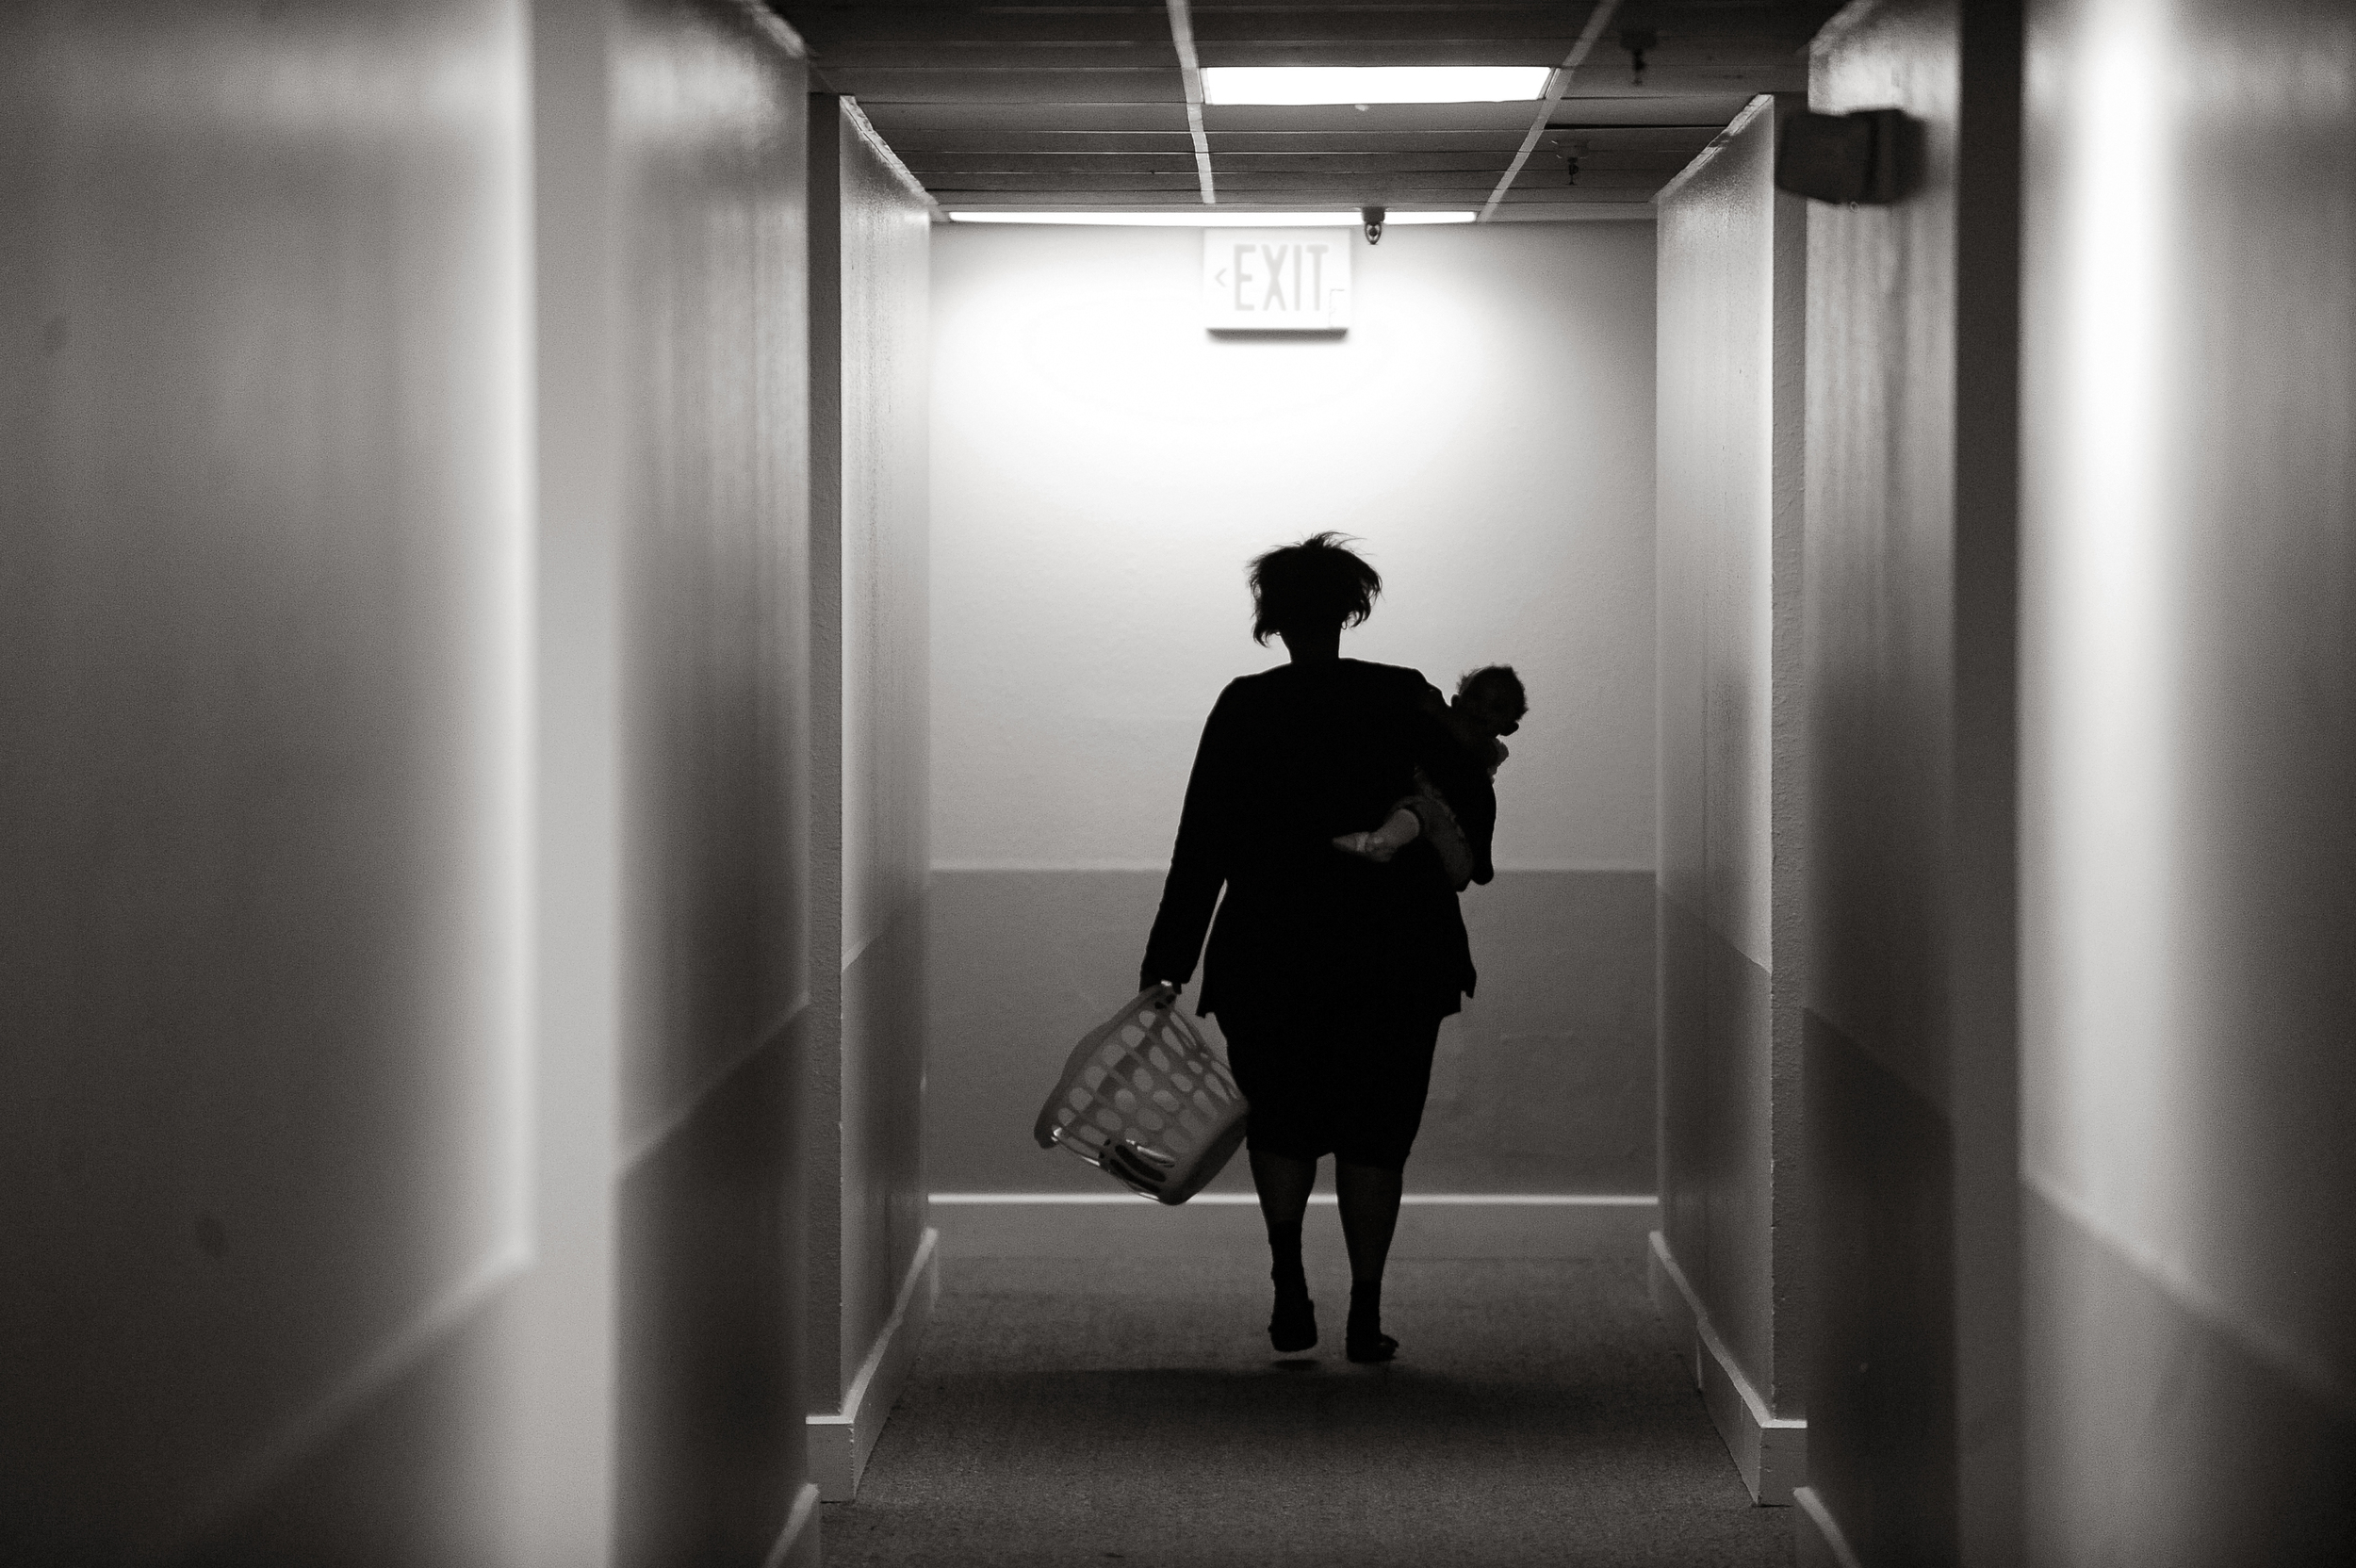 Shawnette Dorsey, 32, carries her baby girl, 13-month-old Shalisiana Fenwick, through the halls at Decatur Place apartments. Between trips to the laundry room, she was ironing clothes in preparation for church that morning.  © Craig F. Walker/The Denver Post